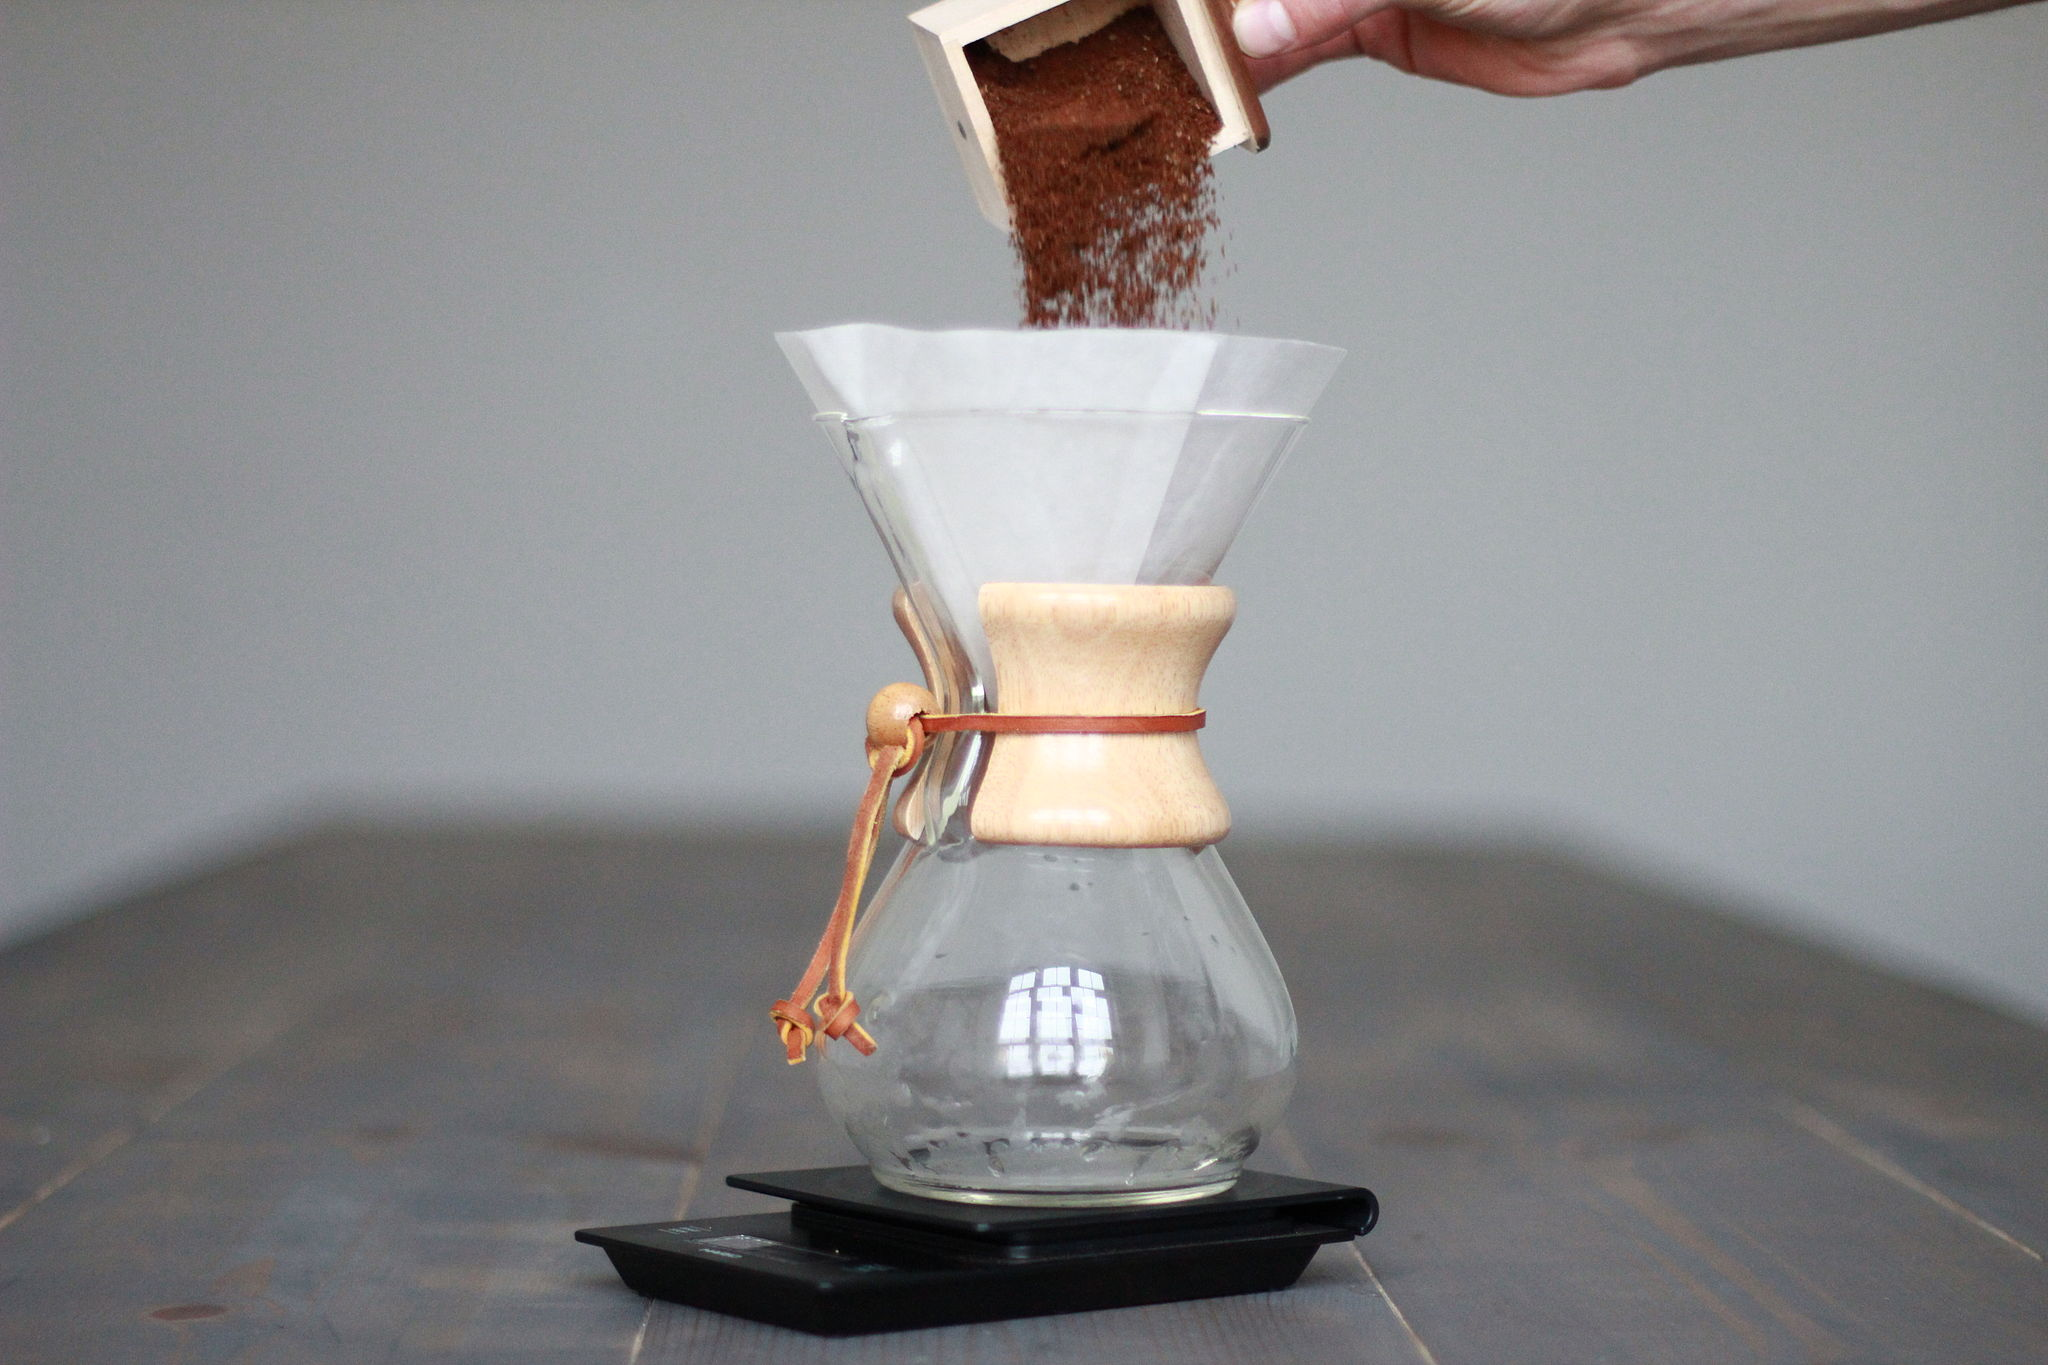 A Chemex coffee maker | © Coffee Circle from Berlin, Deutschland/WikiCommons